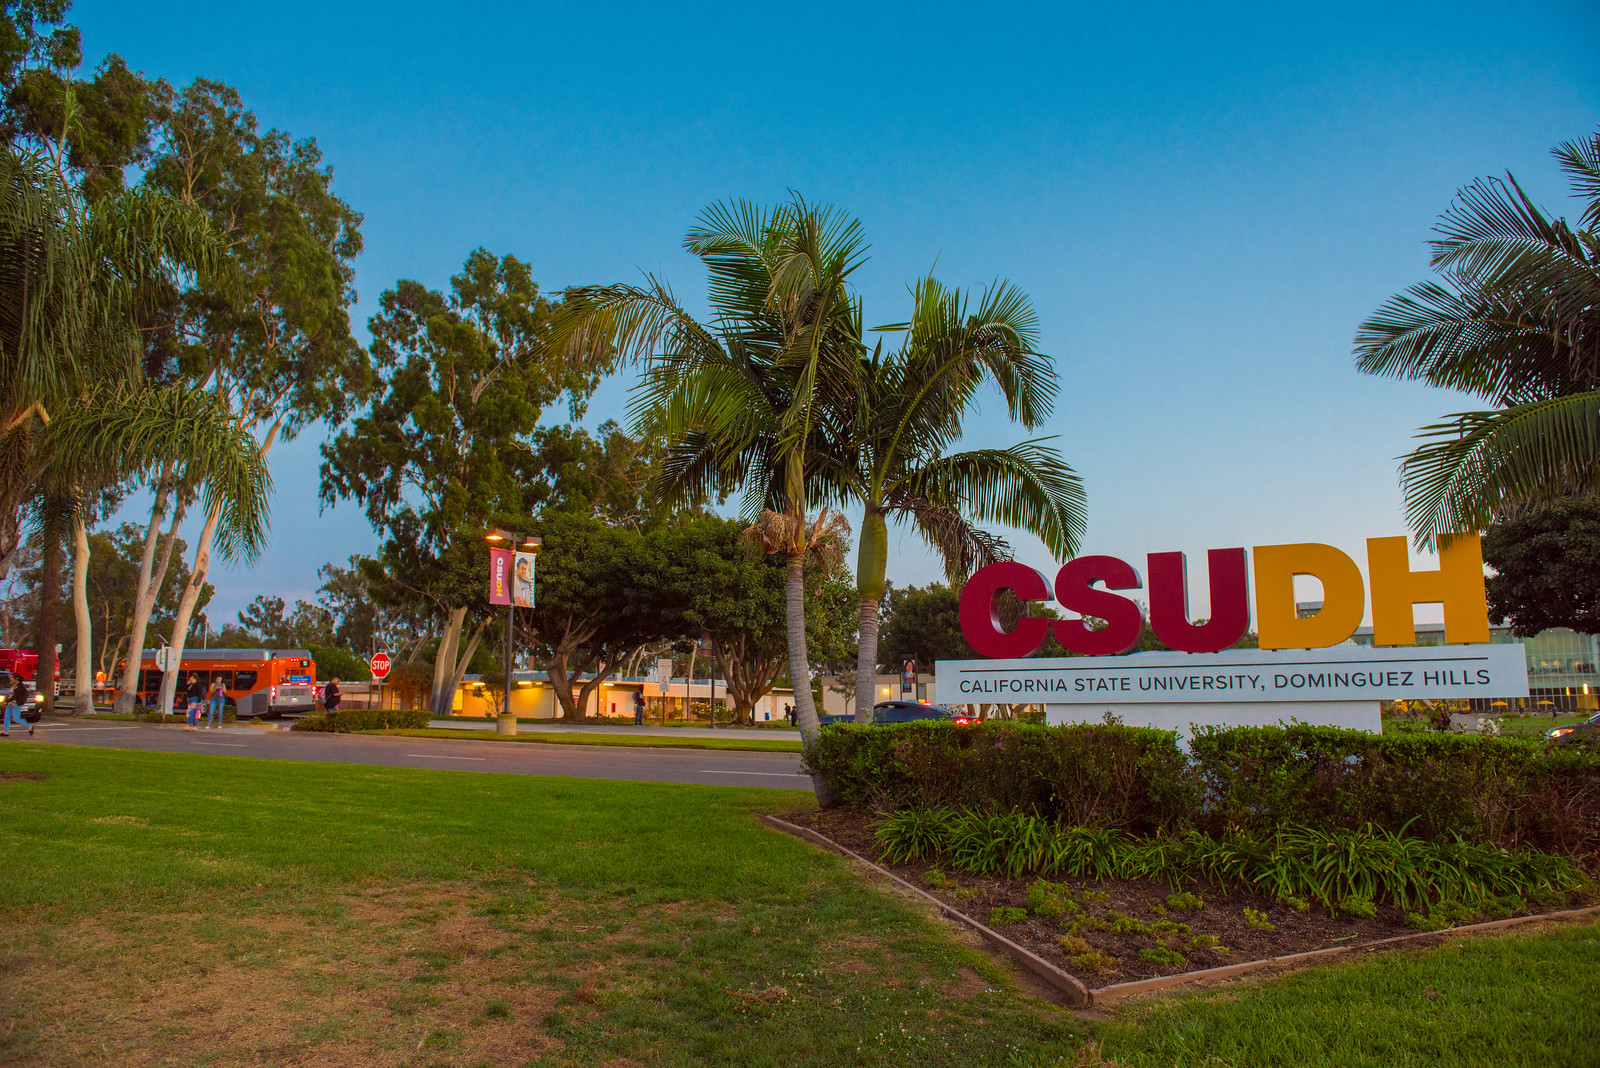 California State University, Dominguez Hills sign on campus